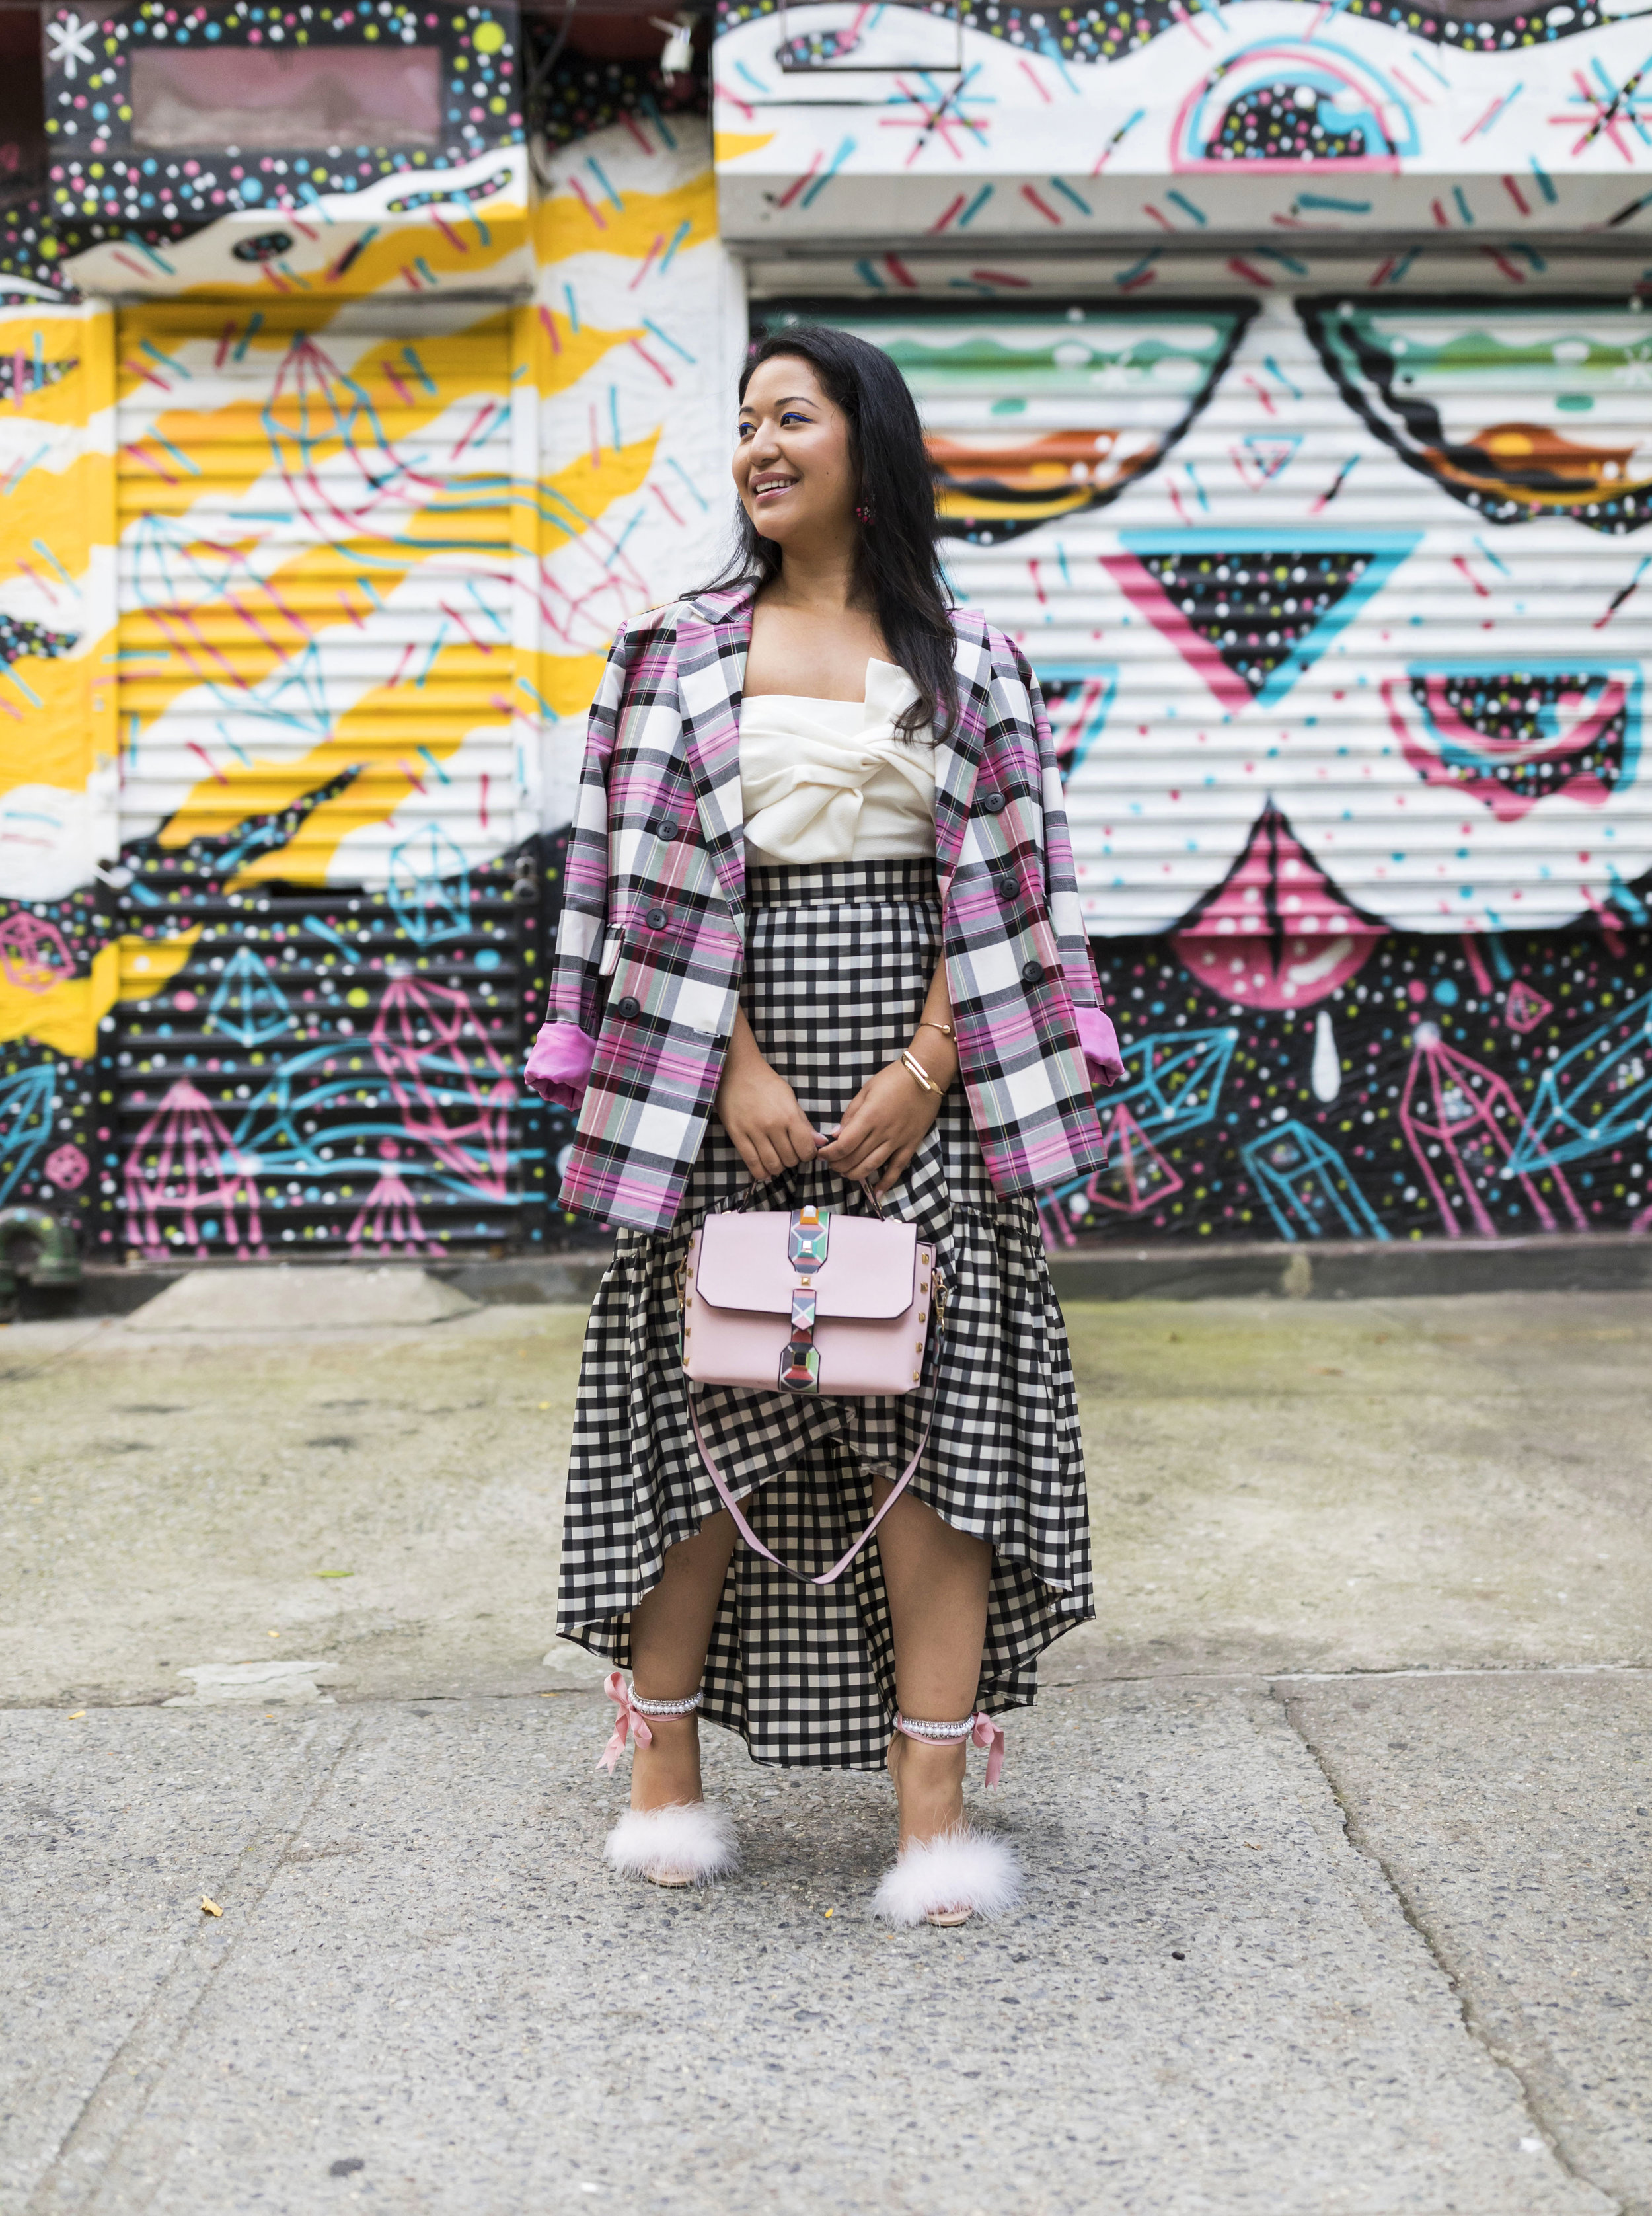 Mixing Plaid & Gingham - Best way to play with plaid prints are by mixing them together!